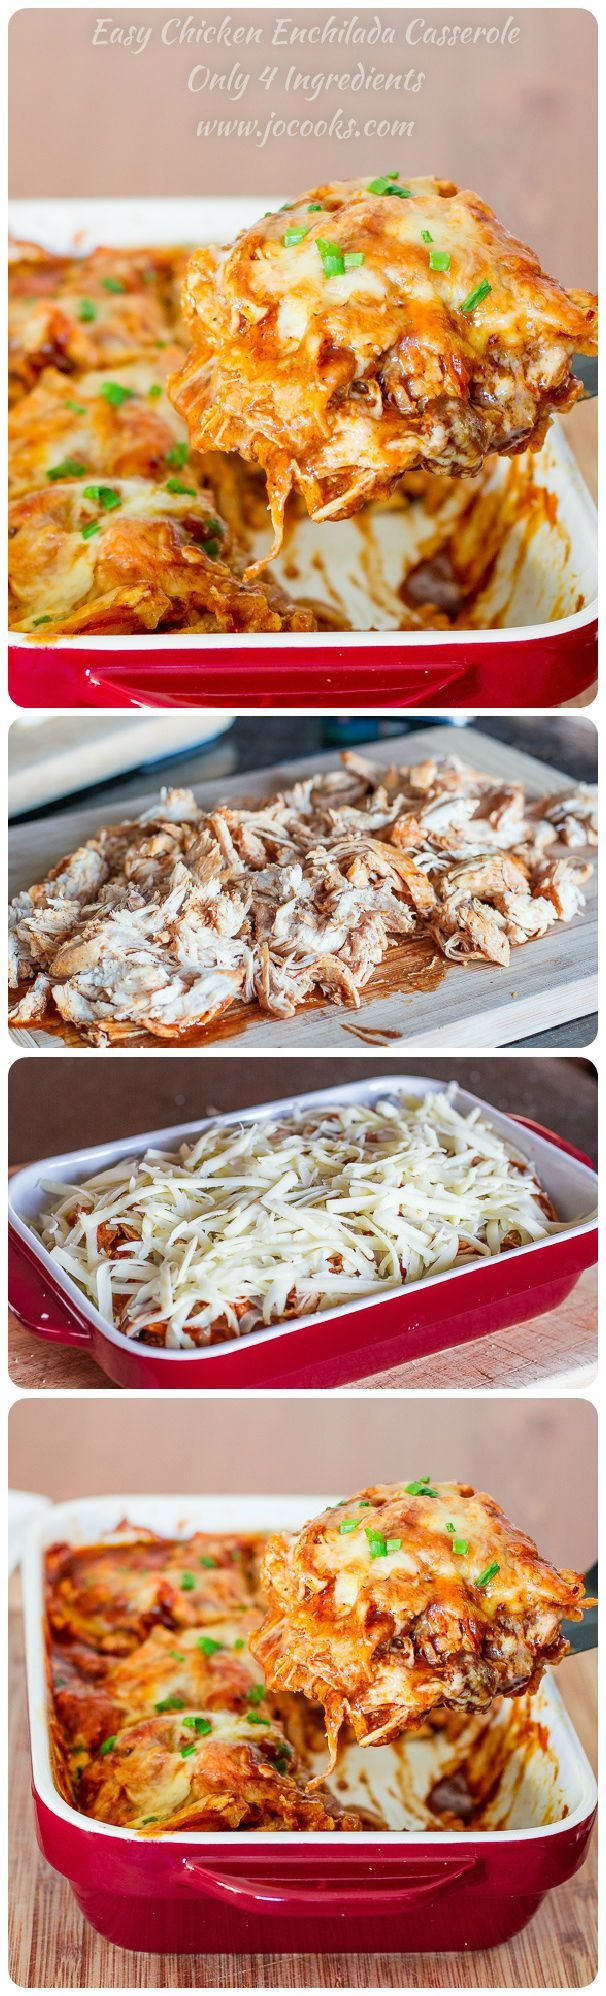 No Bake: Easy Chicken Enchilada Casserole - Jo Cooks